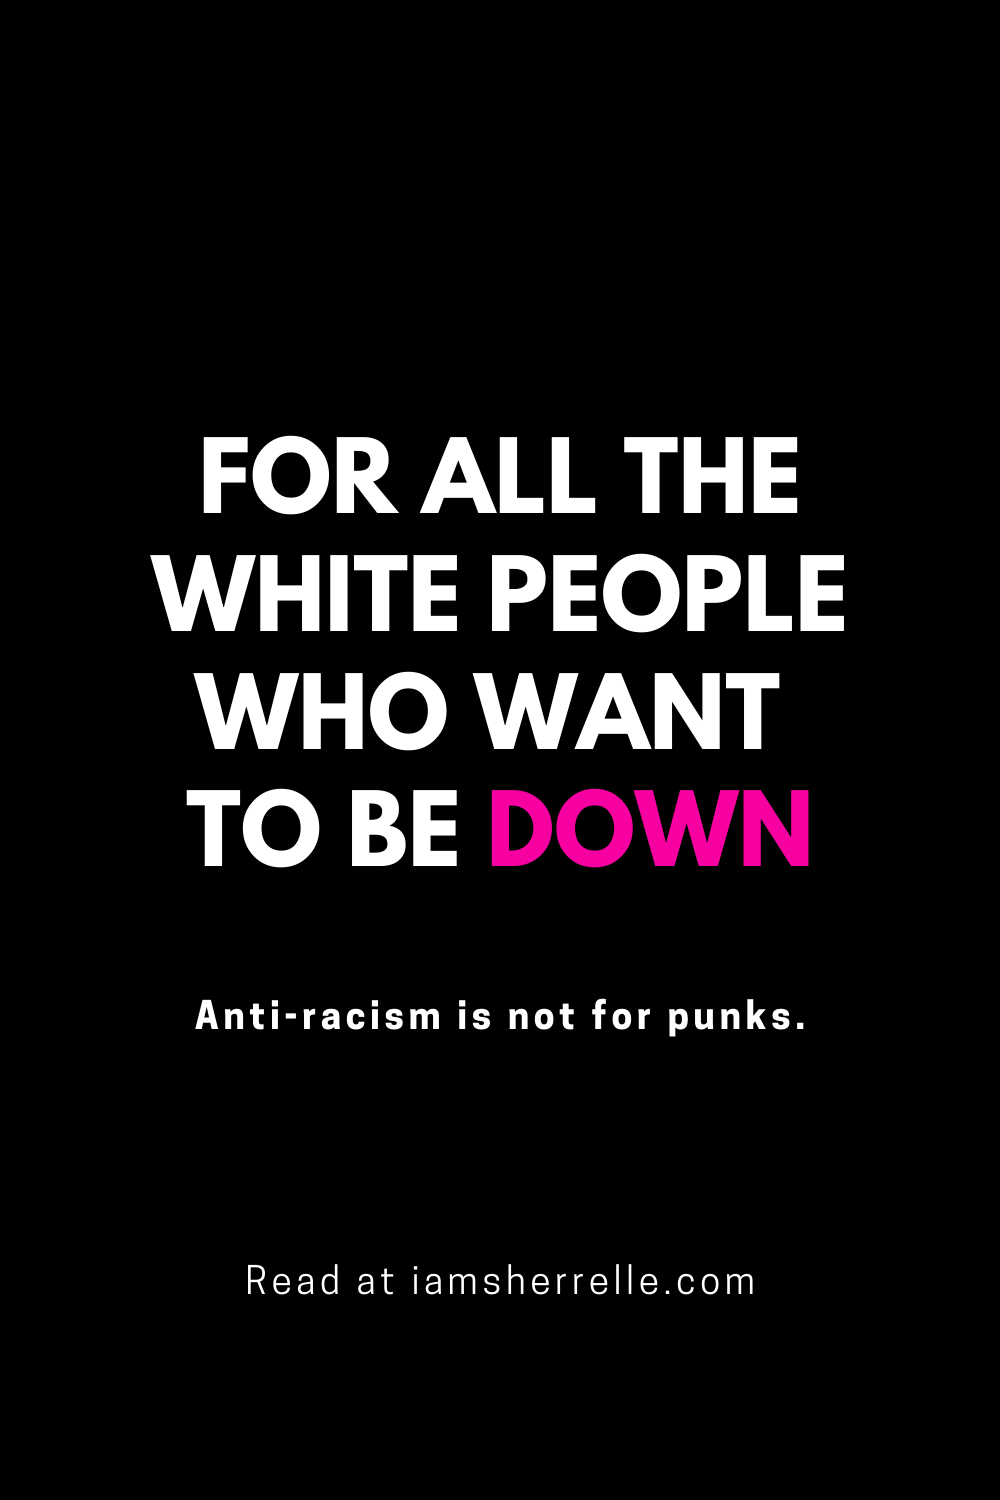 To the white people who want to be down: being anti-racist is not for punks.